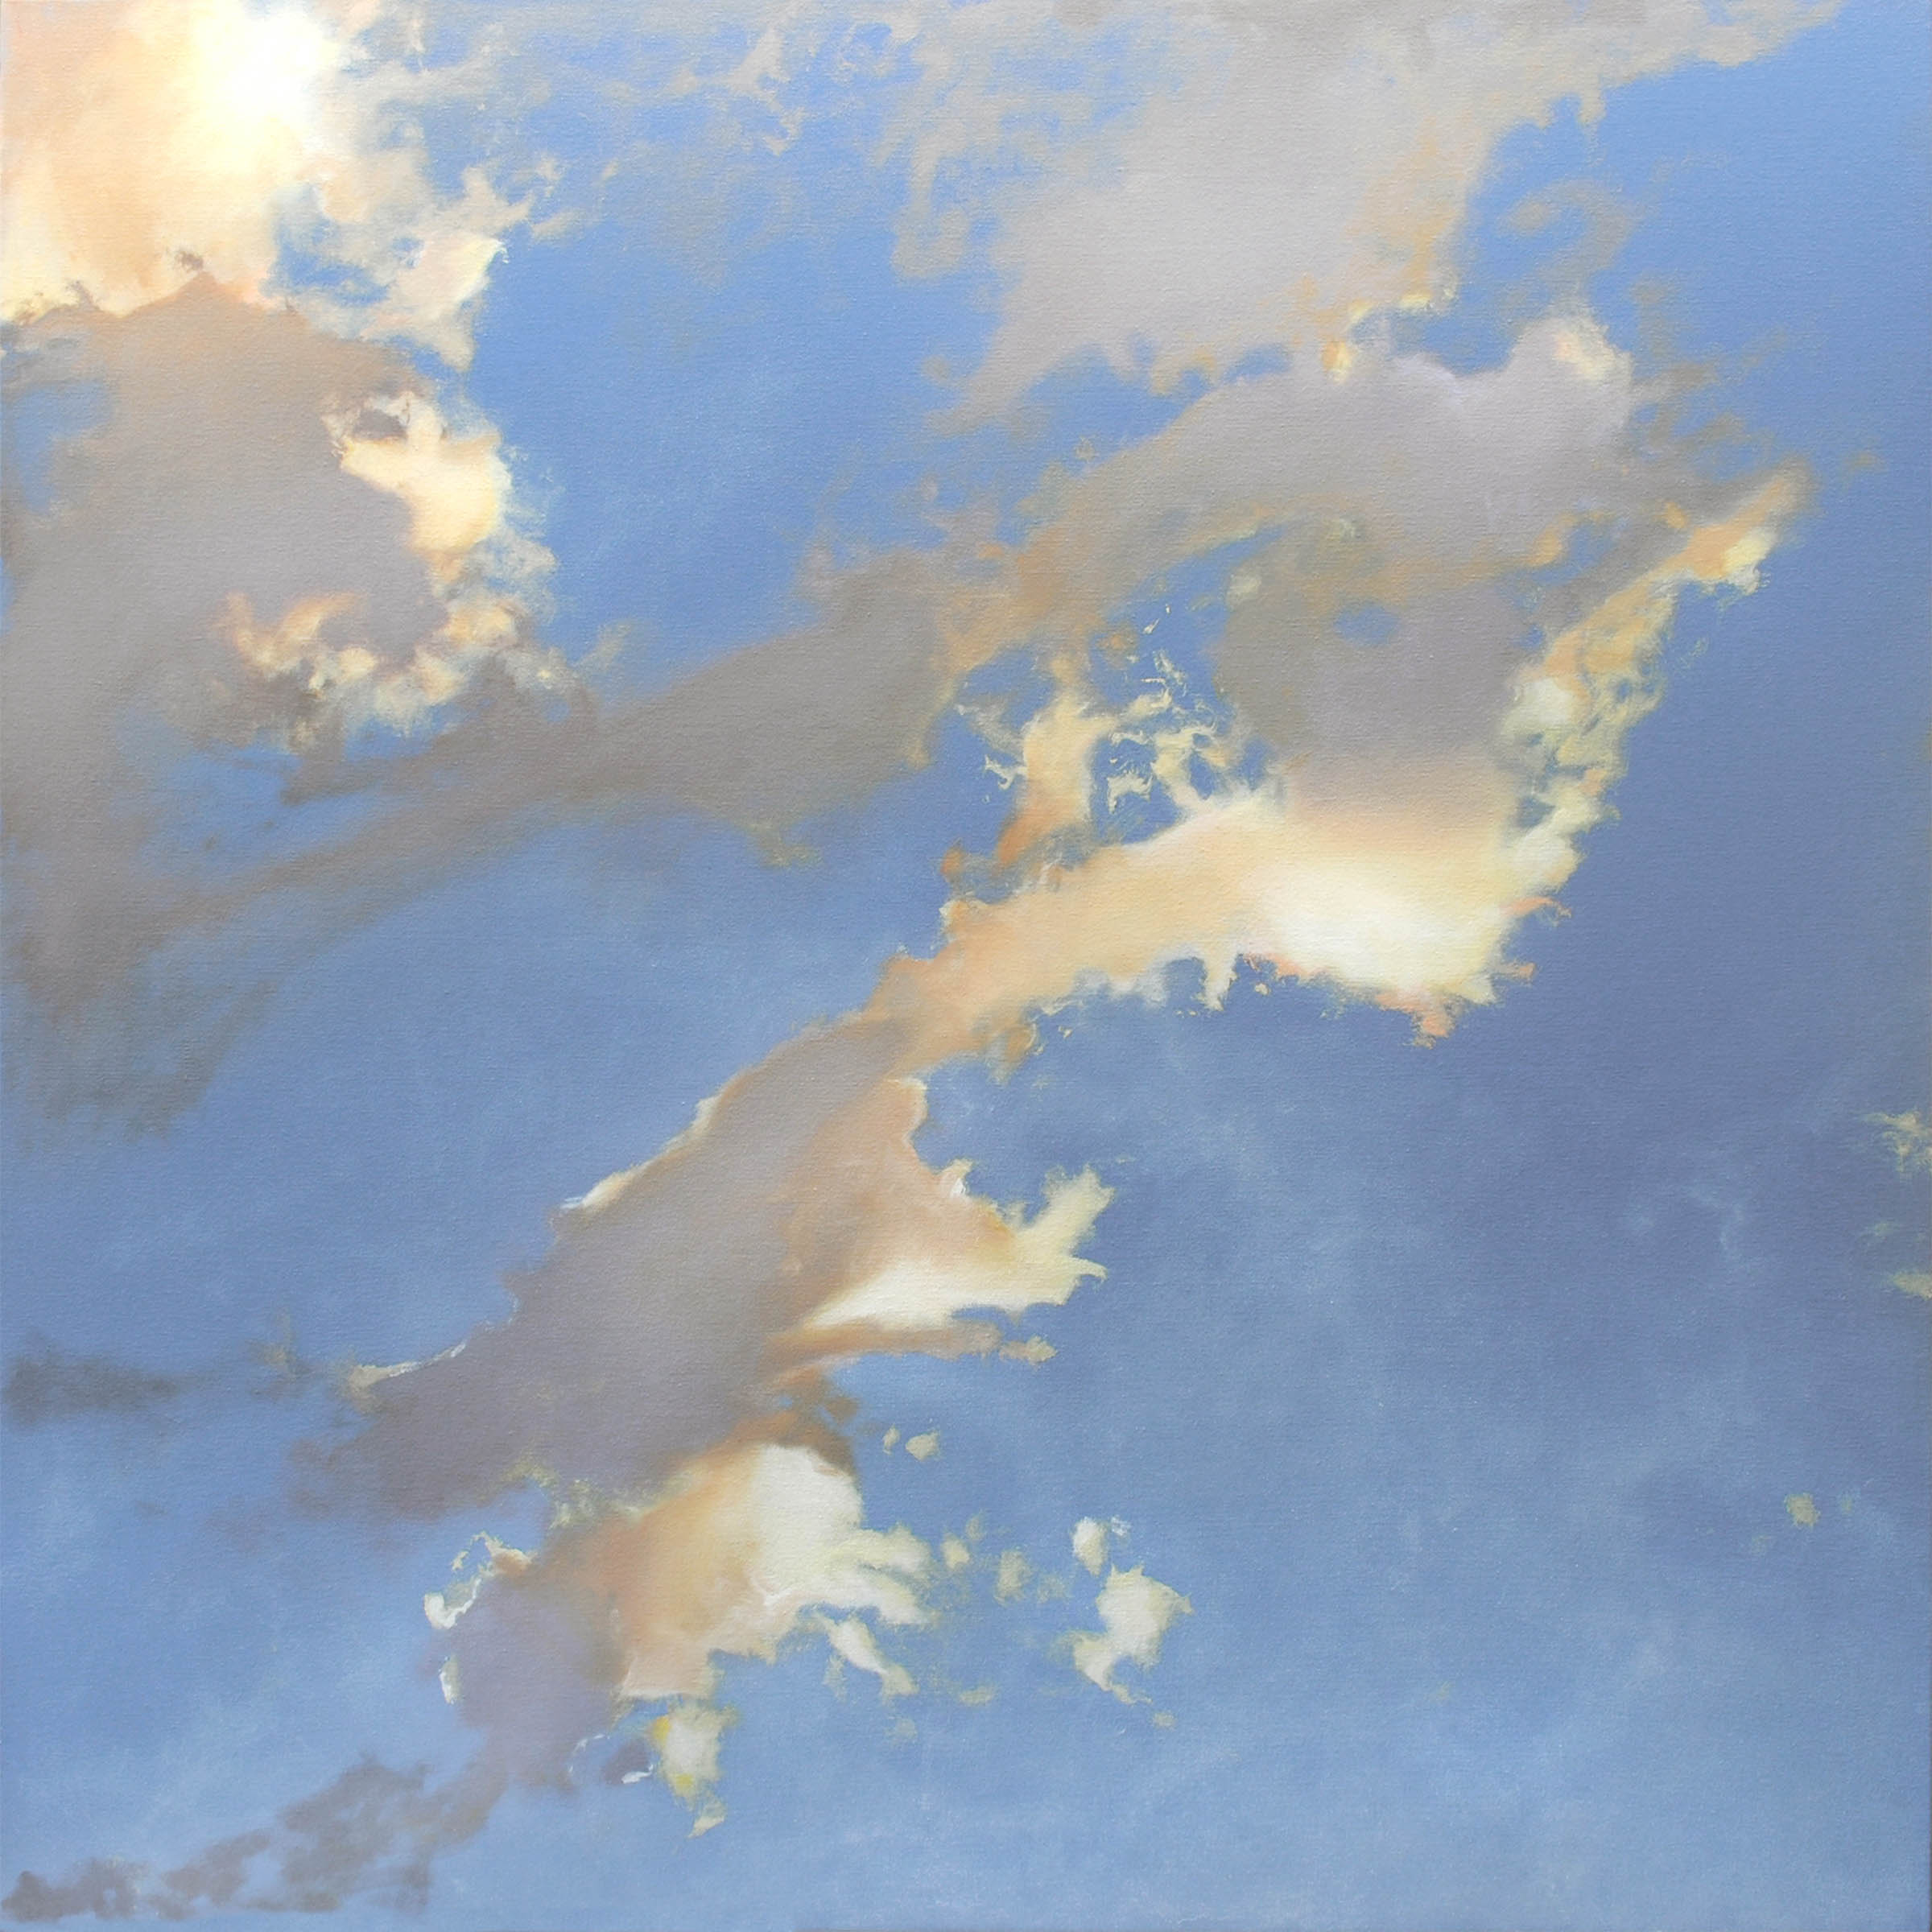 Cascade artwork by Cap Pannell - art listed for sale on Artplode